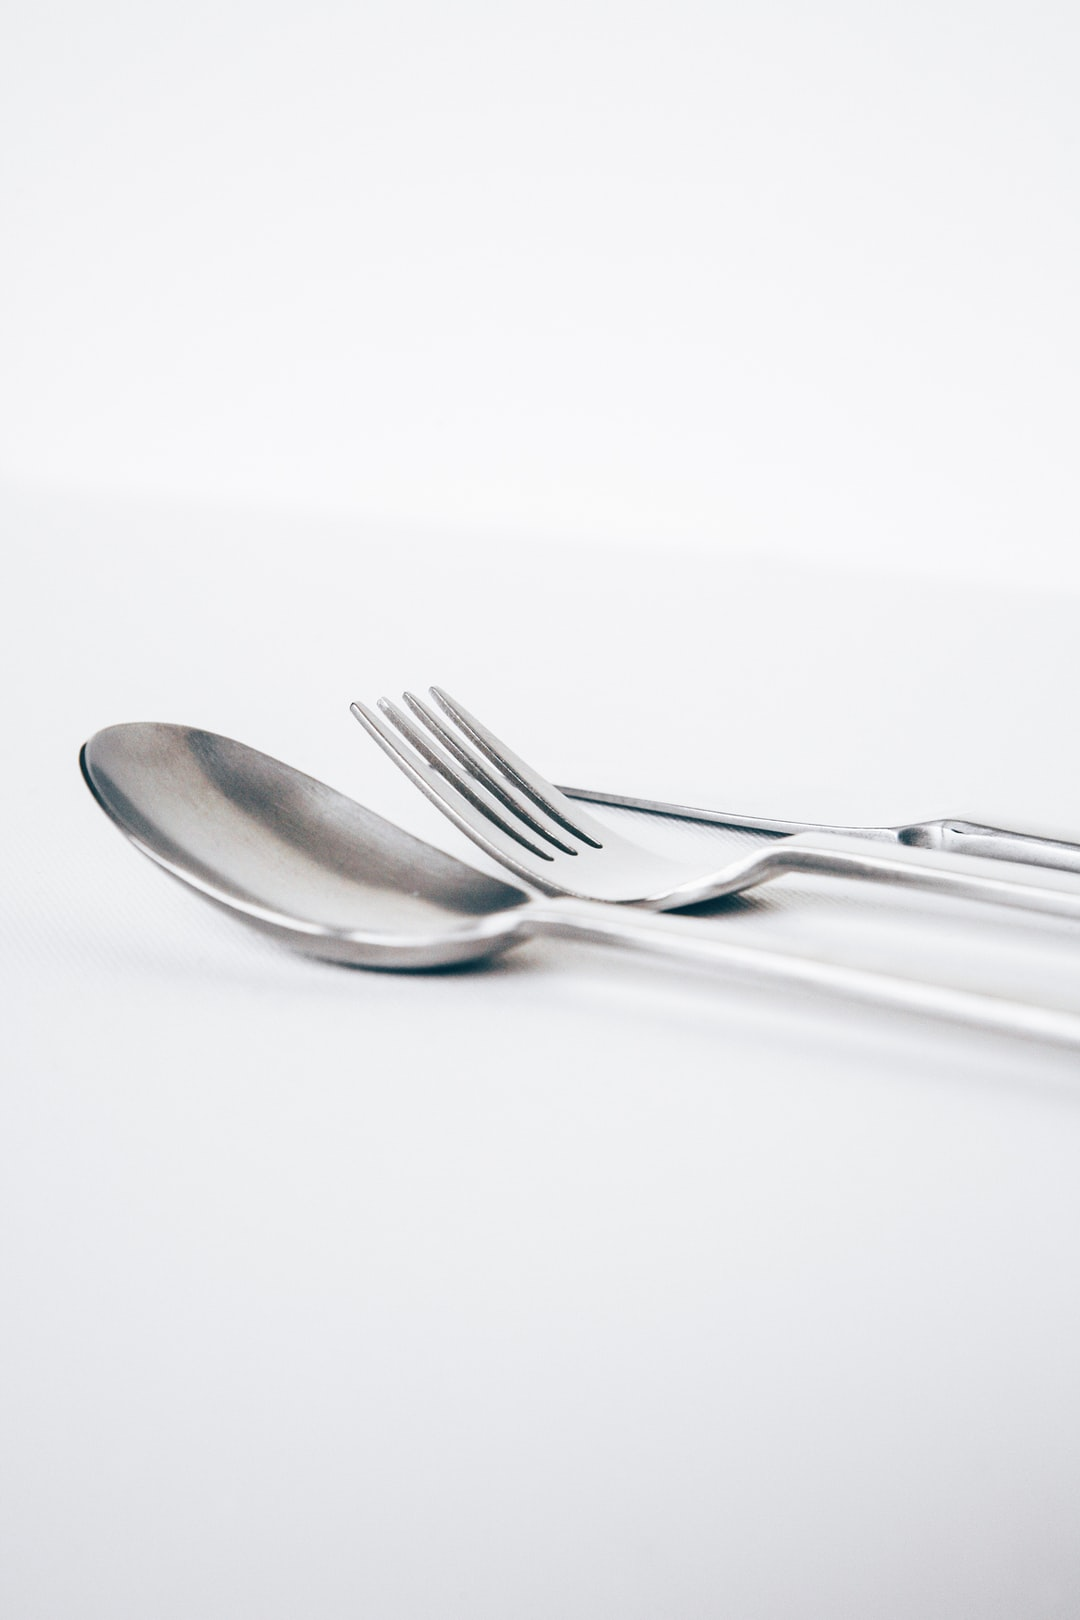 White restaurant table with silver modern styled spoon, fork and knife